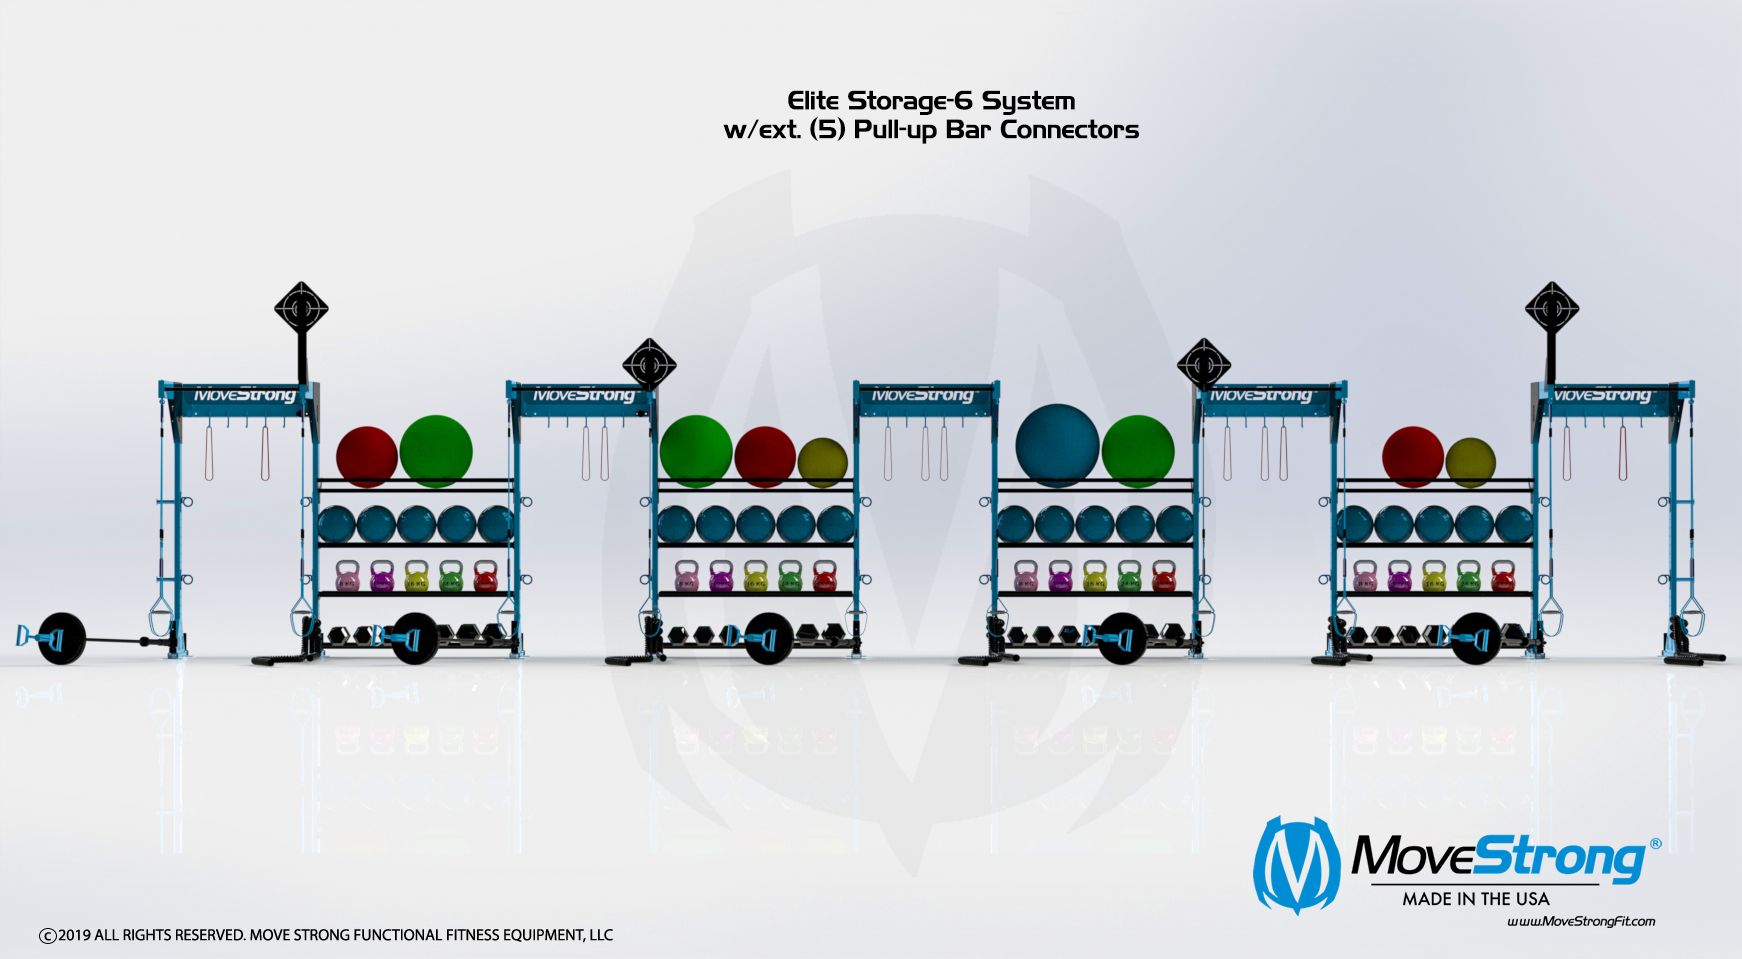 ELite_Storage-6_modular-pull-up ext-connectors - front view.png